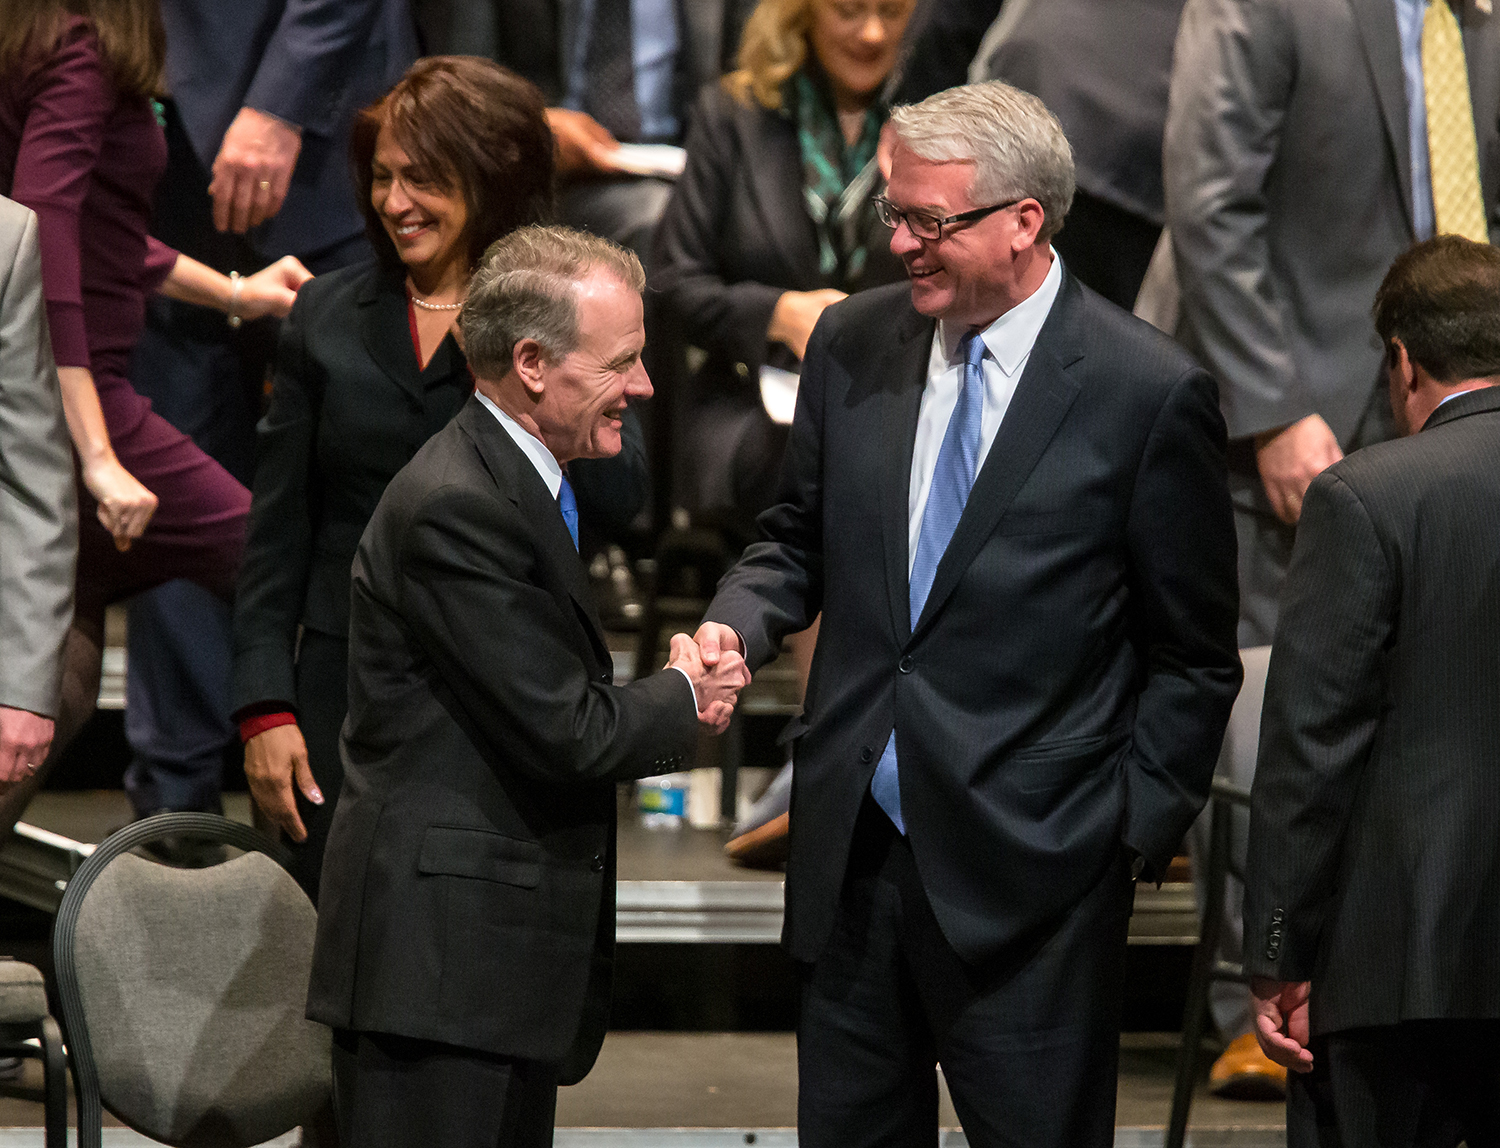 Illinois Speaker of the House Michael Madigan, D-Chicago, shakes hands with Illinois House Minority Leader Jim Durkin, R-Western Springs, prior to the inauguration ceremony for the Illinois House of Representatives for the 101st General Assembly at the University of Illinois Springfield's Sangamon Auditorium, Wednesday, Jan. 9, 2019, in Springfield, Ill. [Justin L. Fowler/The State Journal-Register]